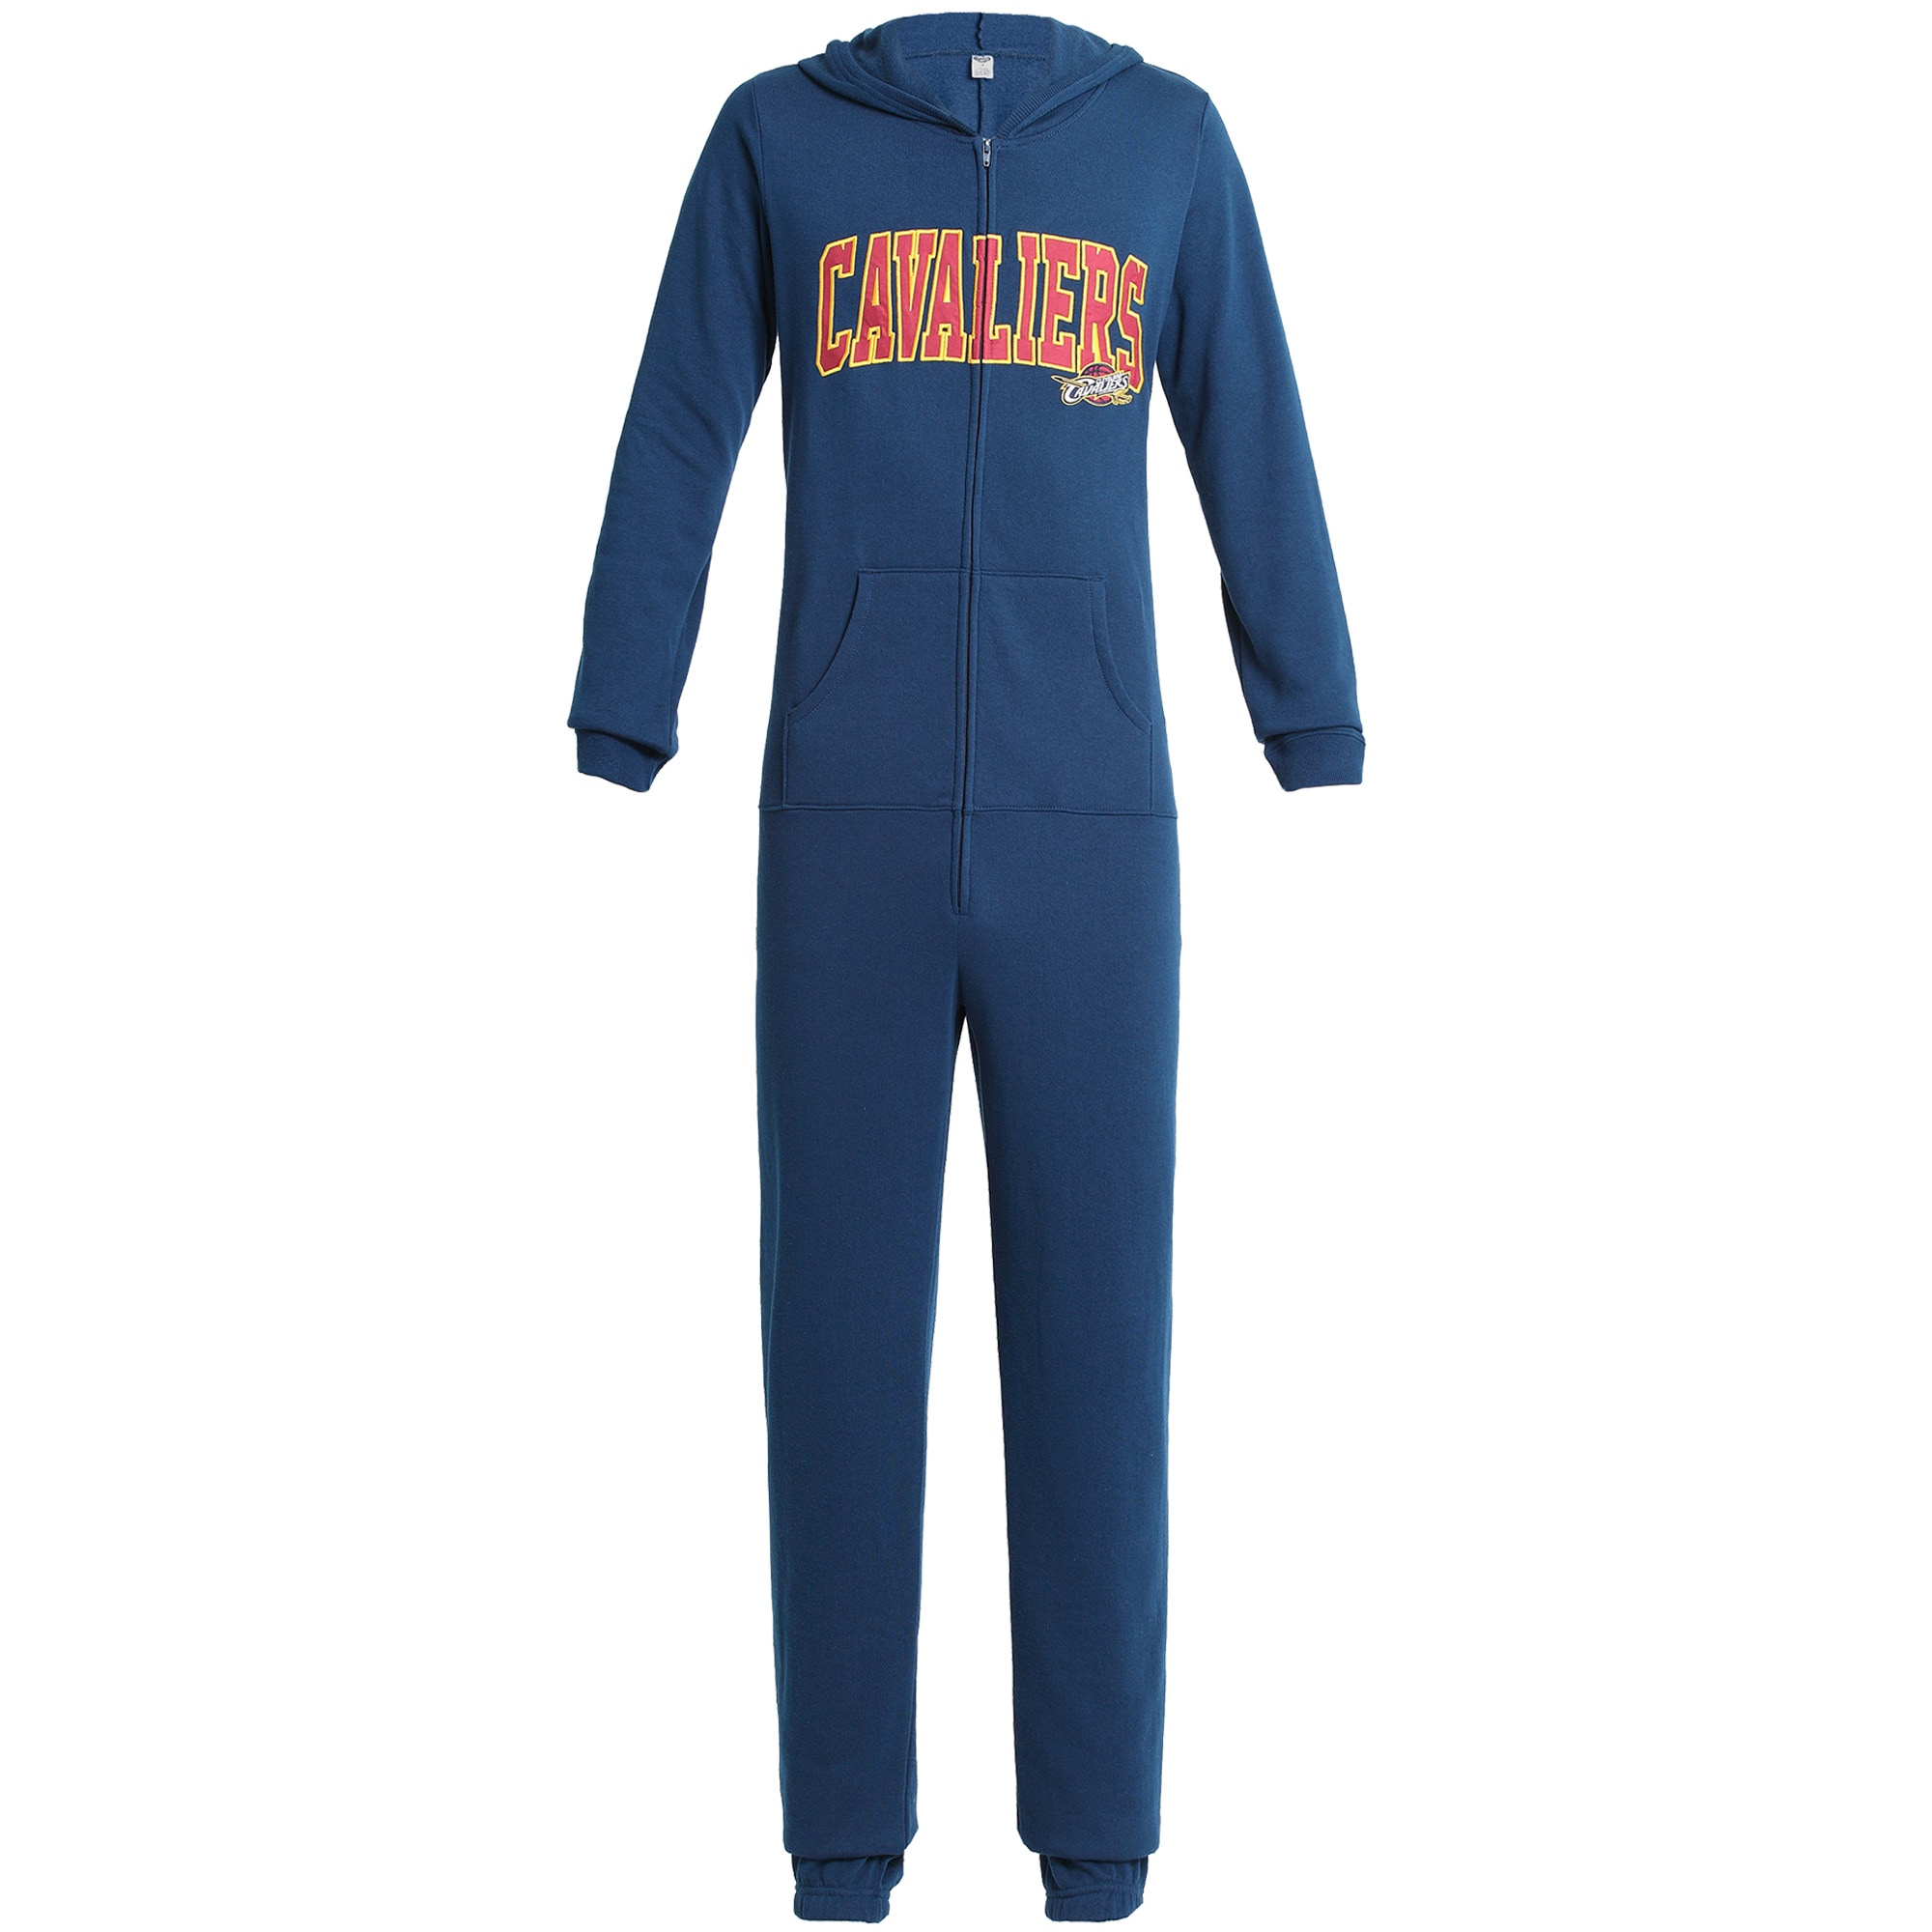 Cleveland Cavaliers Concepts Sport Forefront Union Suit Pajamas - Navy